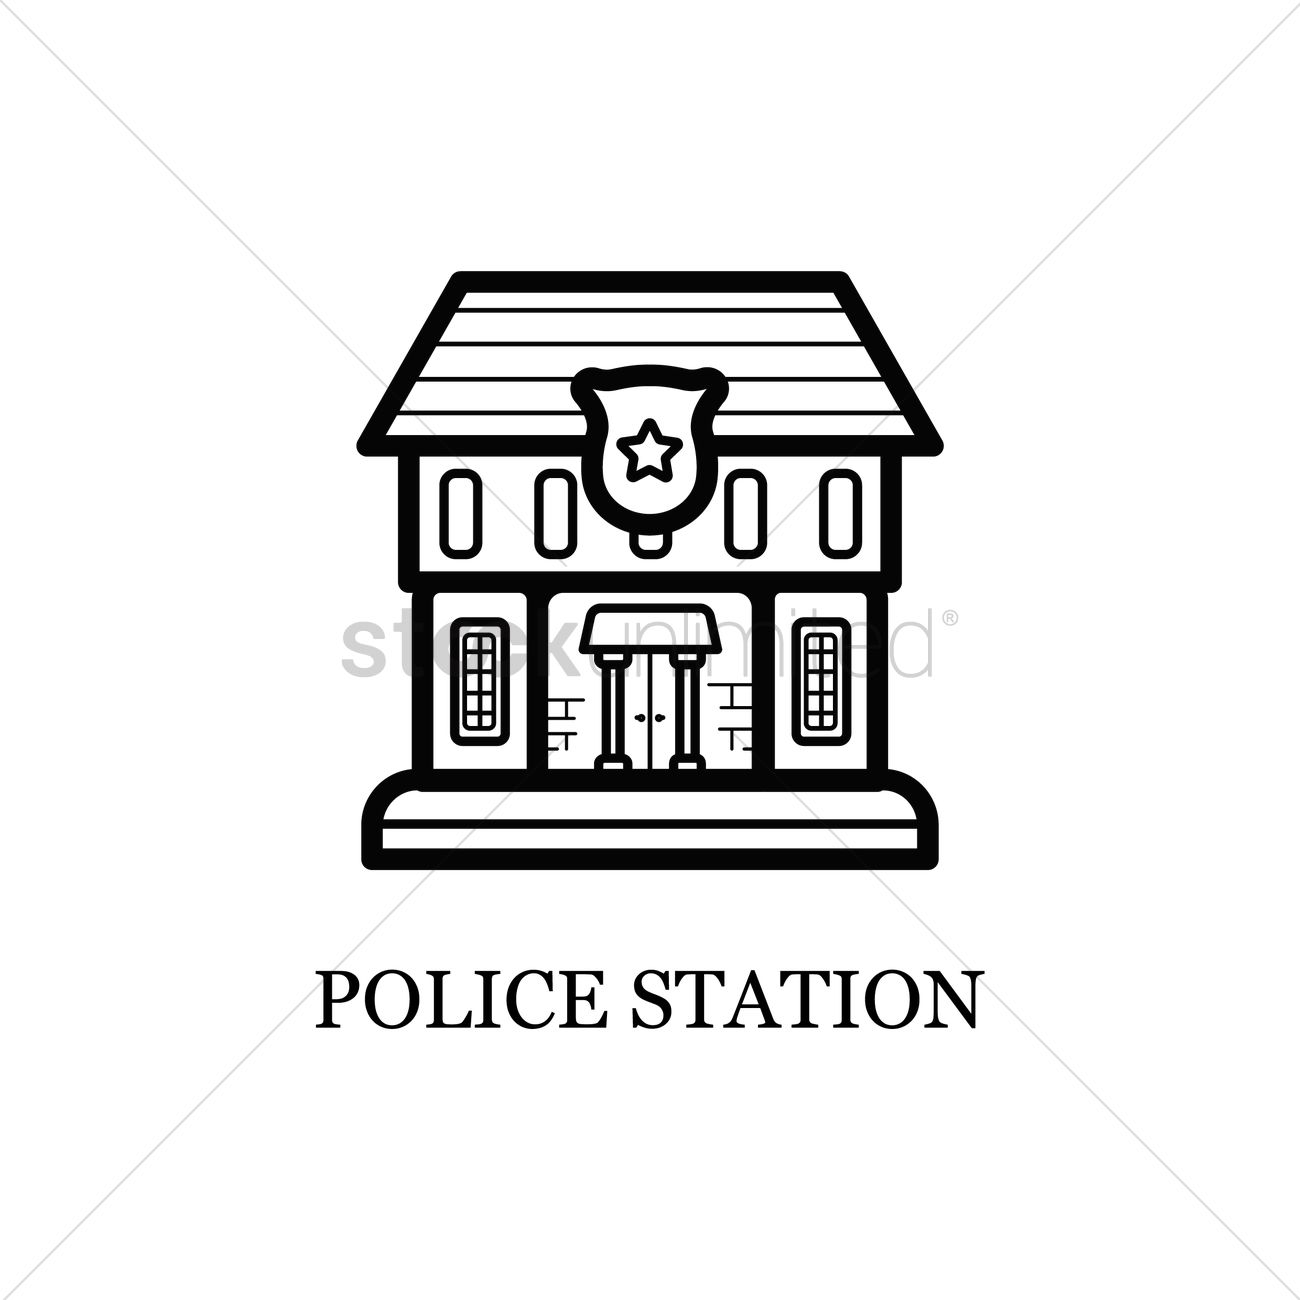 http://images.stockunlimited.net/preview1300/police-station_1805589.jpg Police